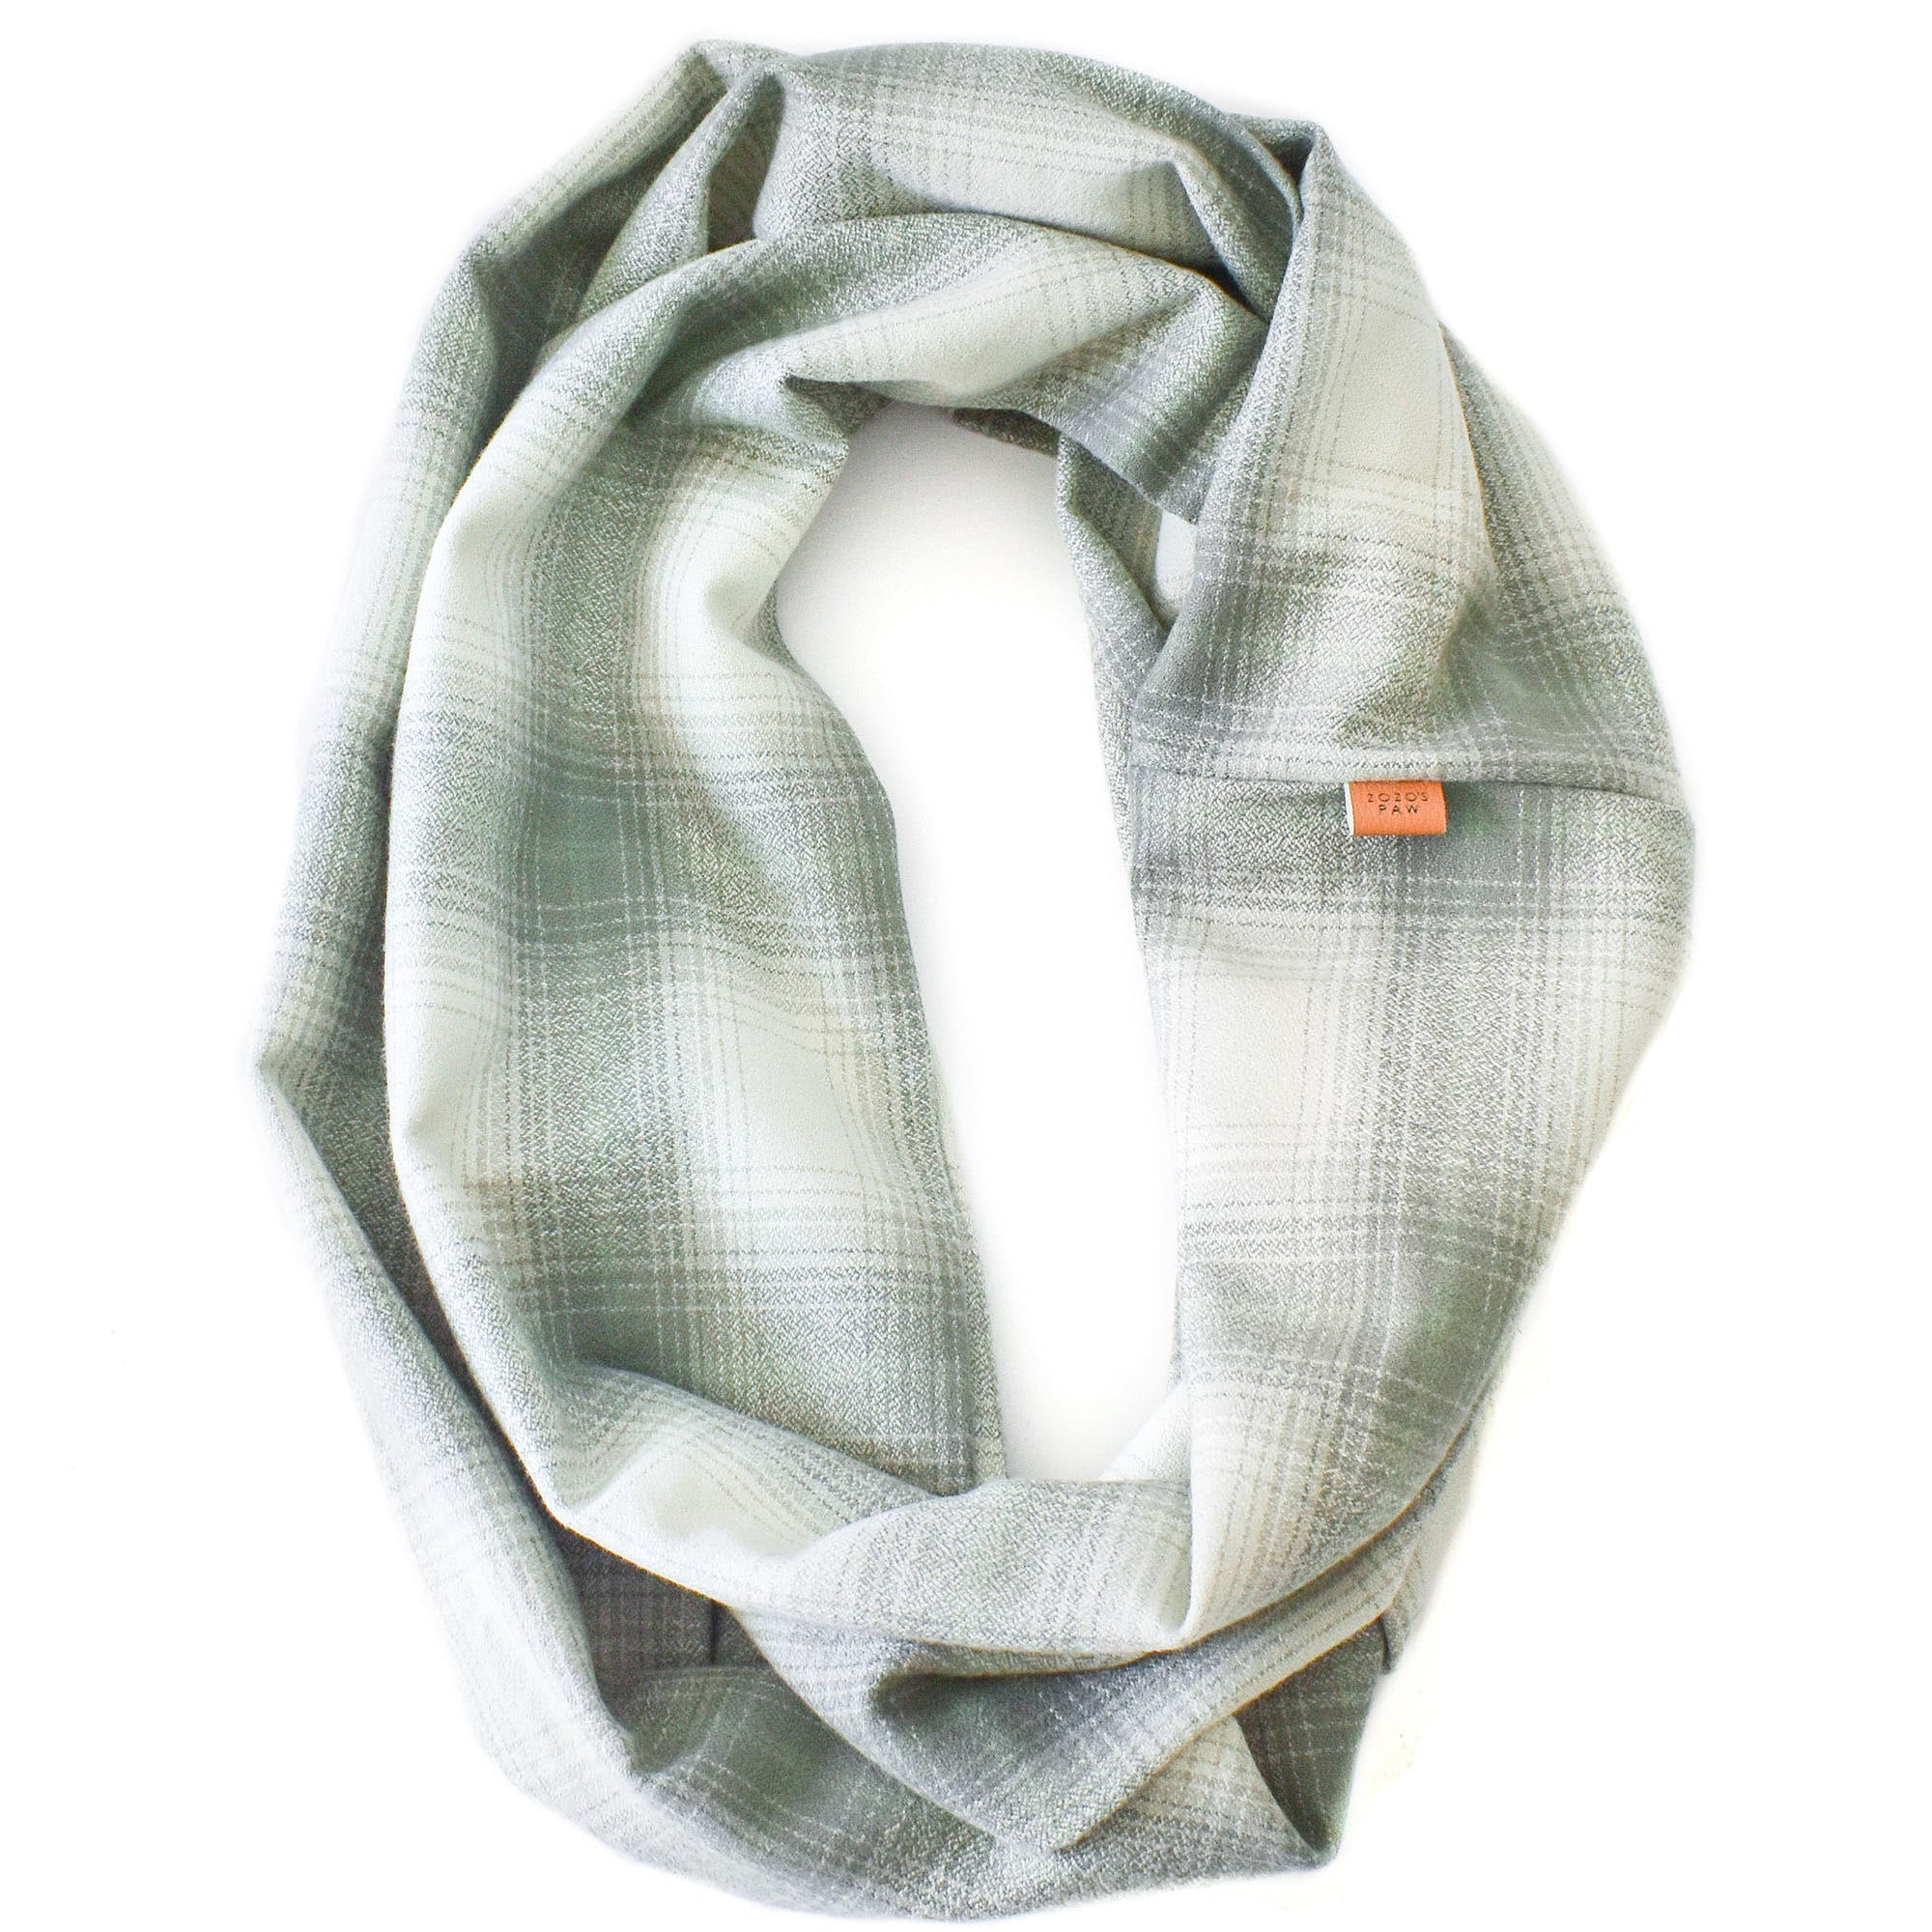 THE TERRA - Flannel Infinity Scarf